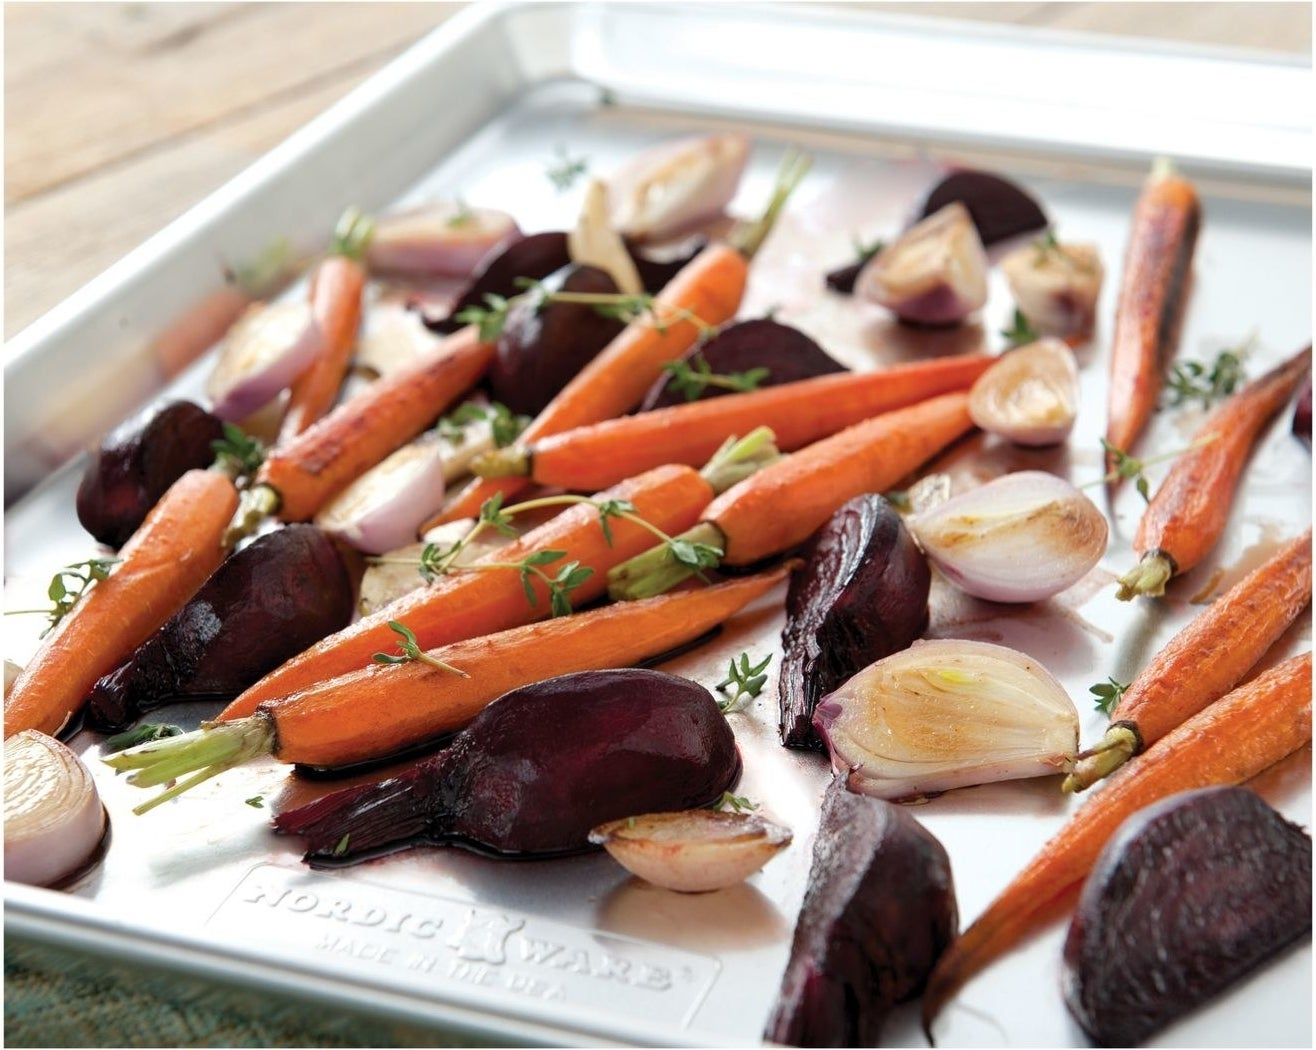 A baking sheet covered in roasted veggies